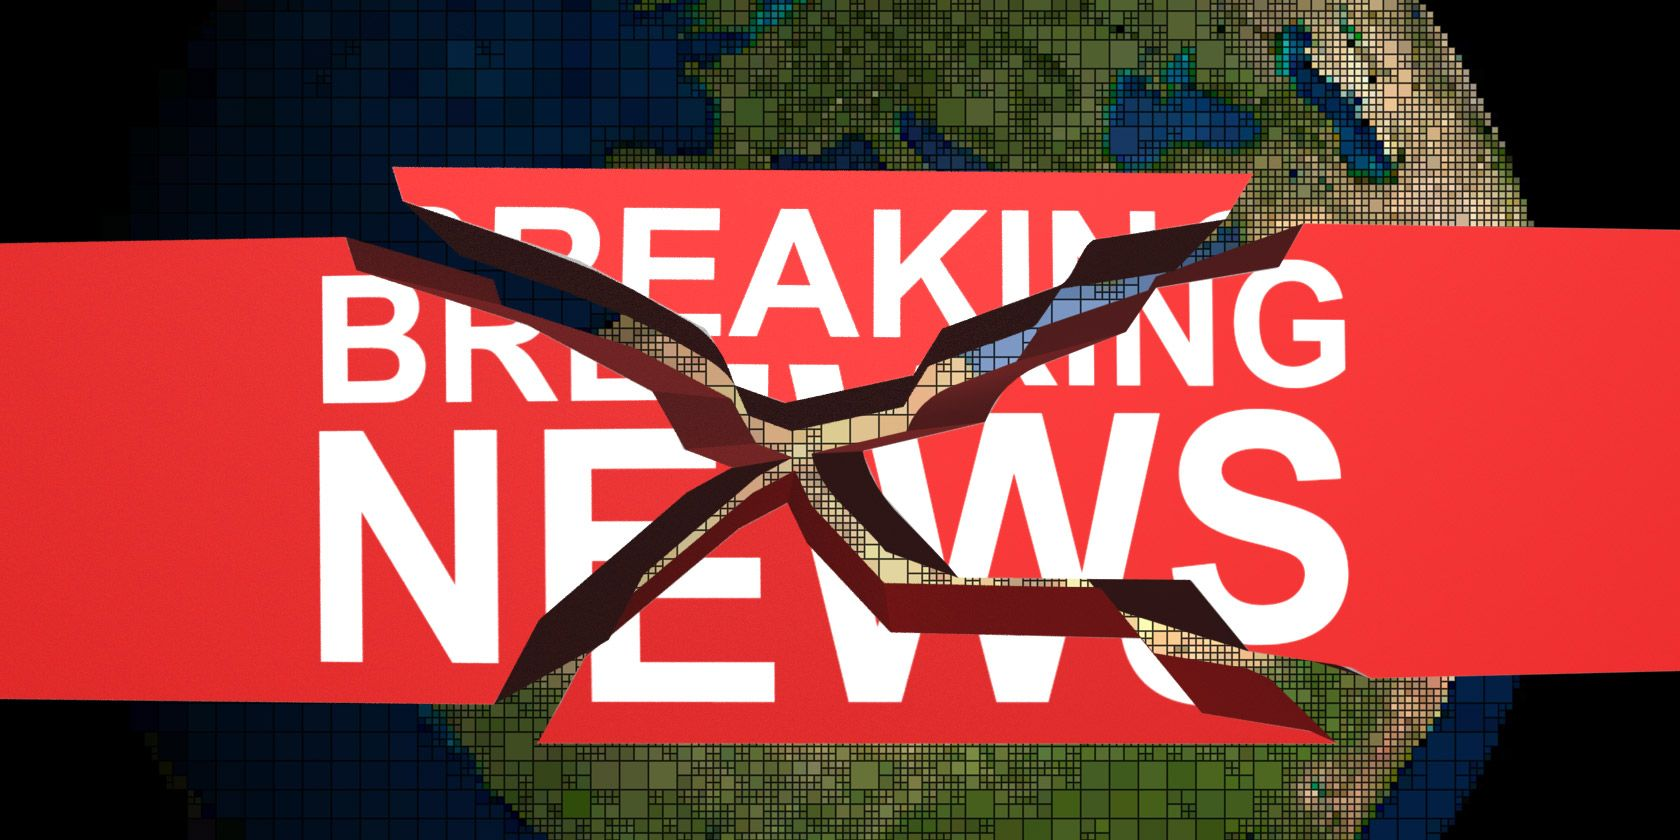 10 Tips to Avoid (Spreading) Fake News During a Crisis